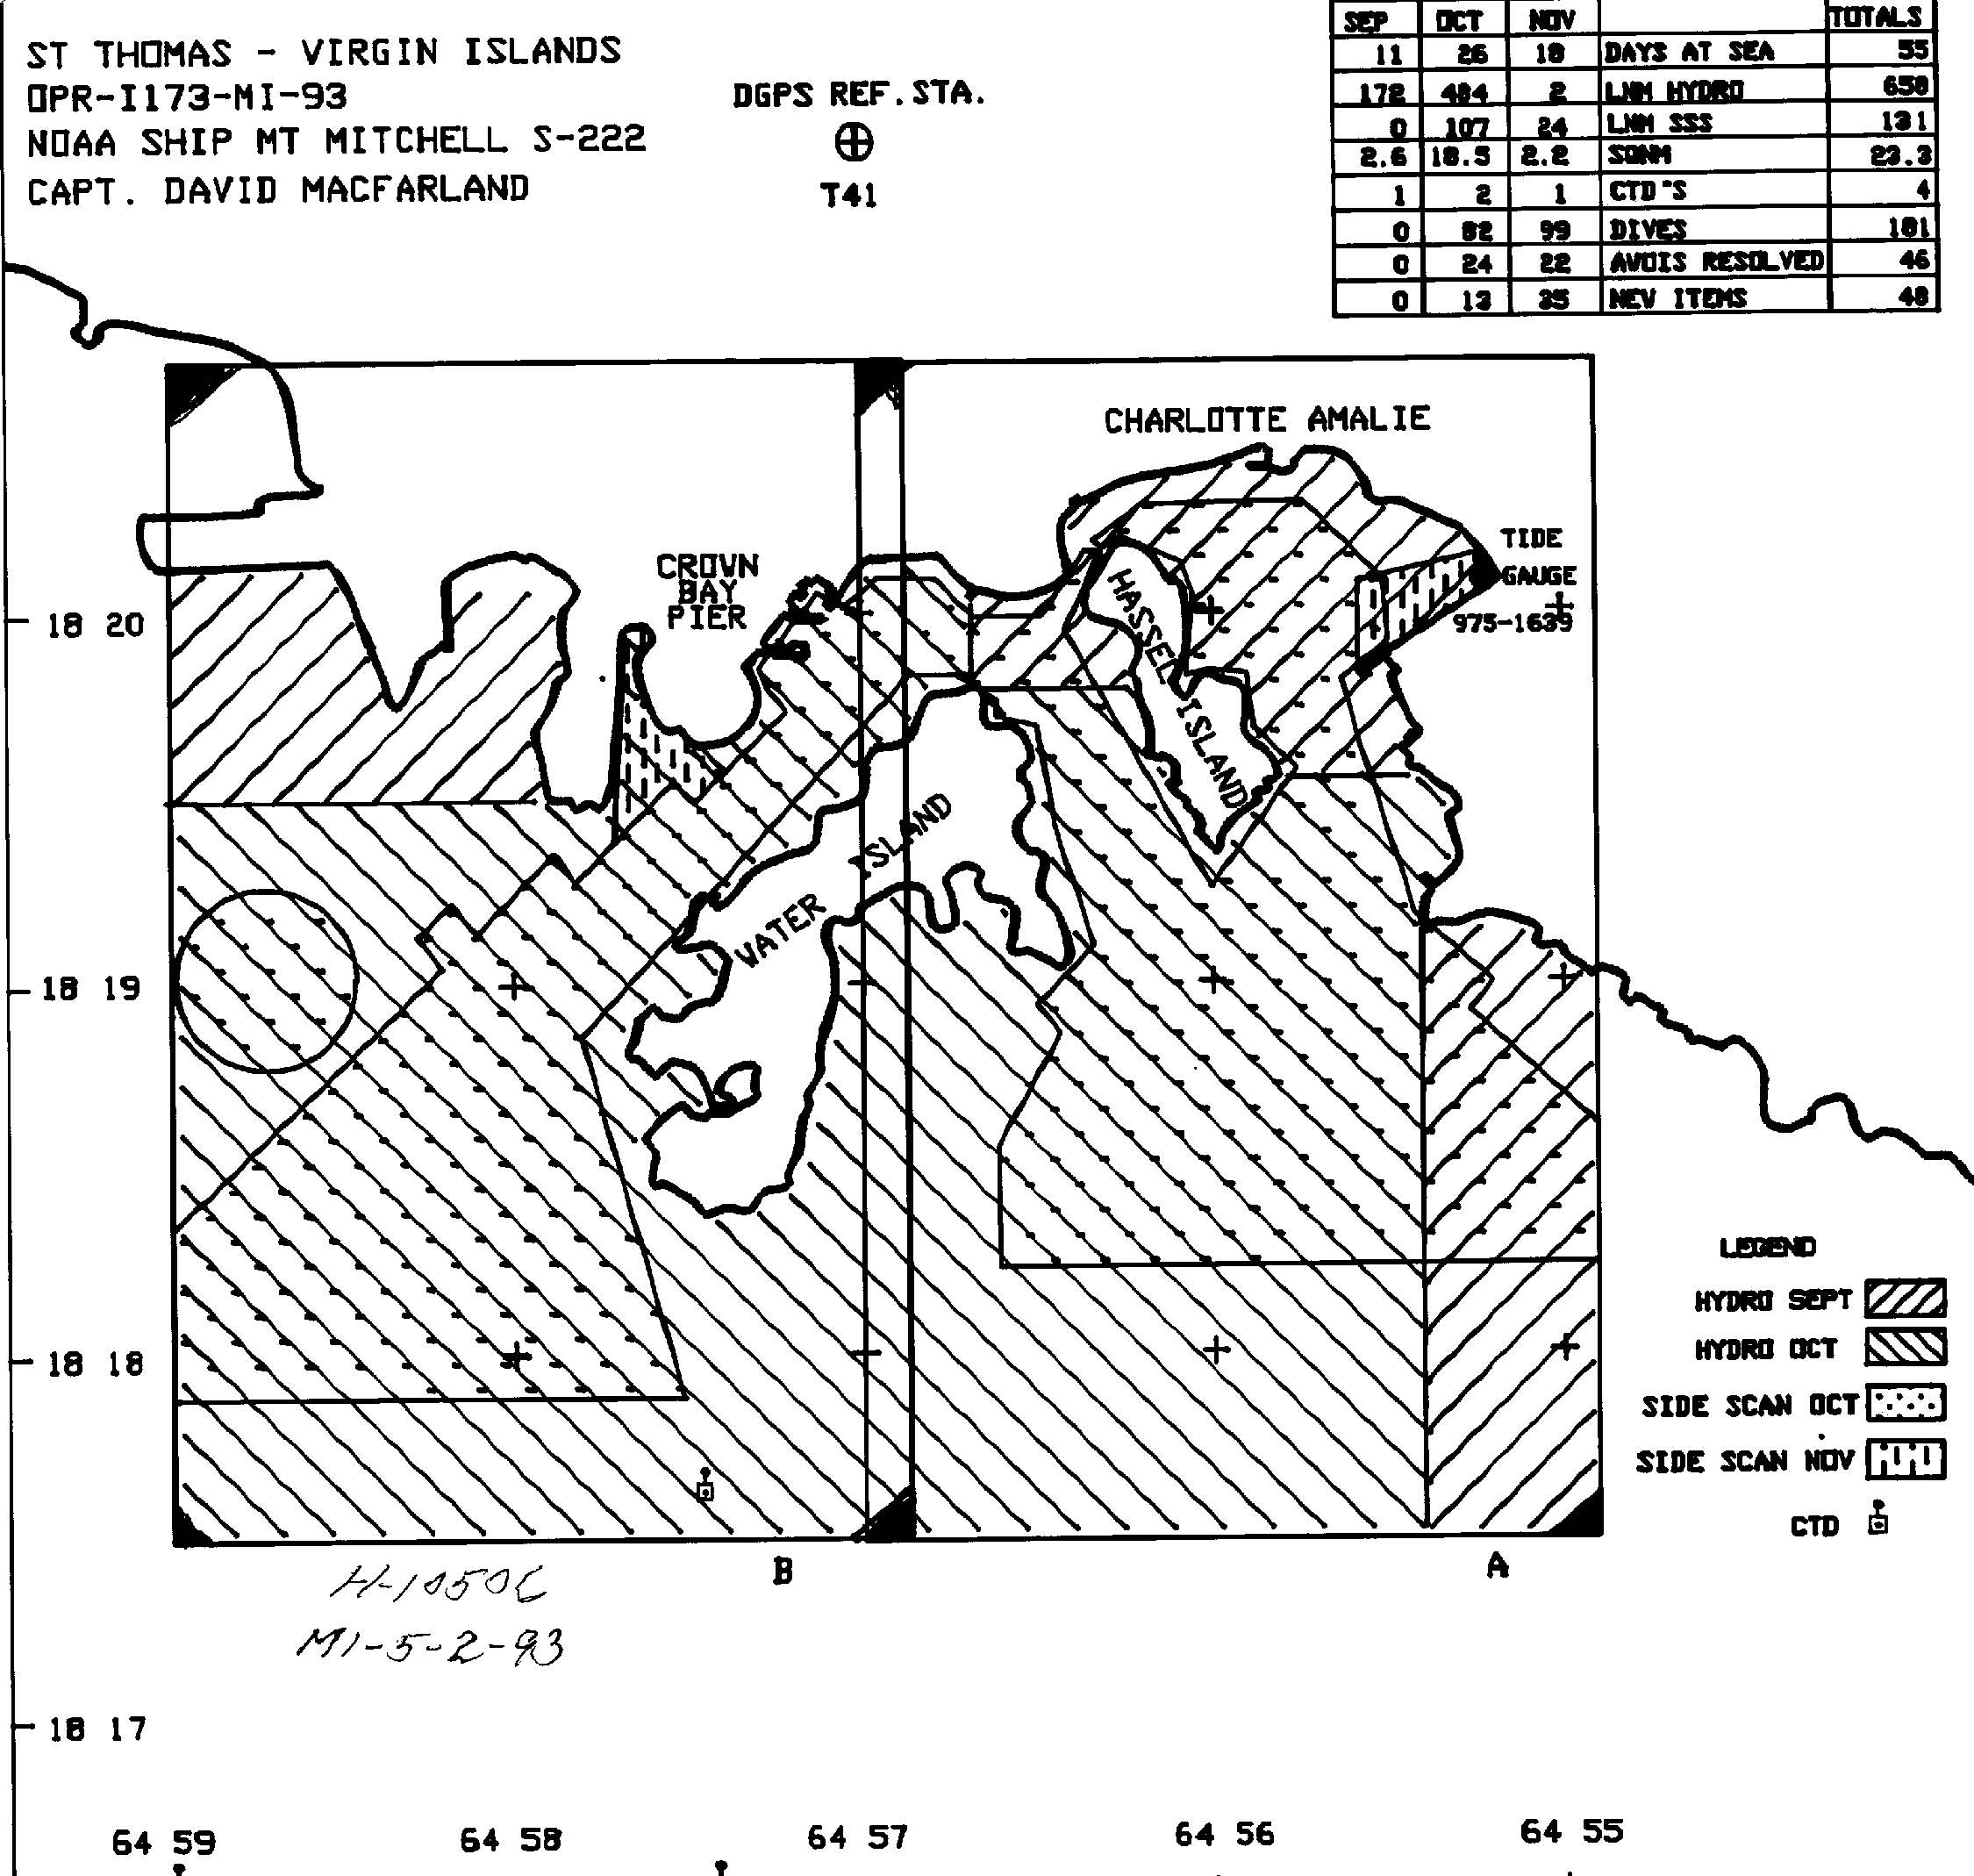 H10506: NOS Hydrographic Survey , St. Thomas Harbor